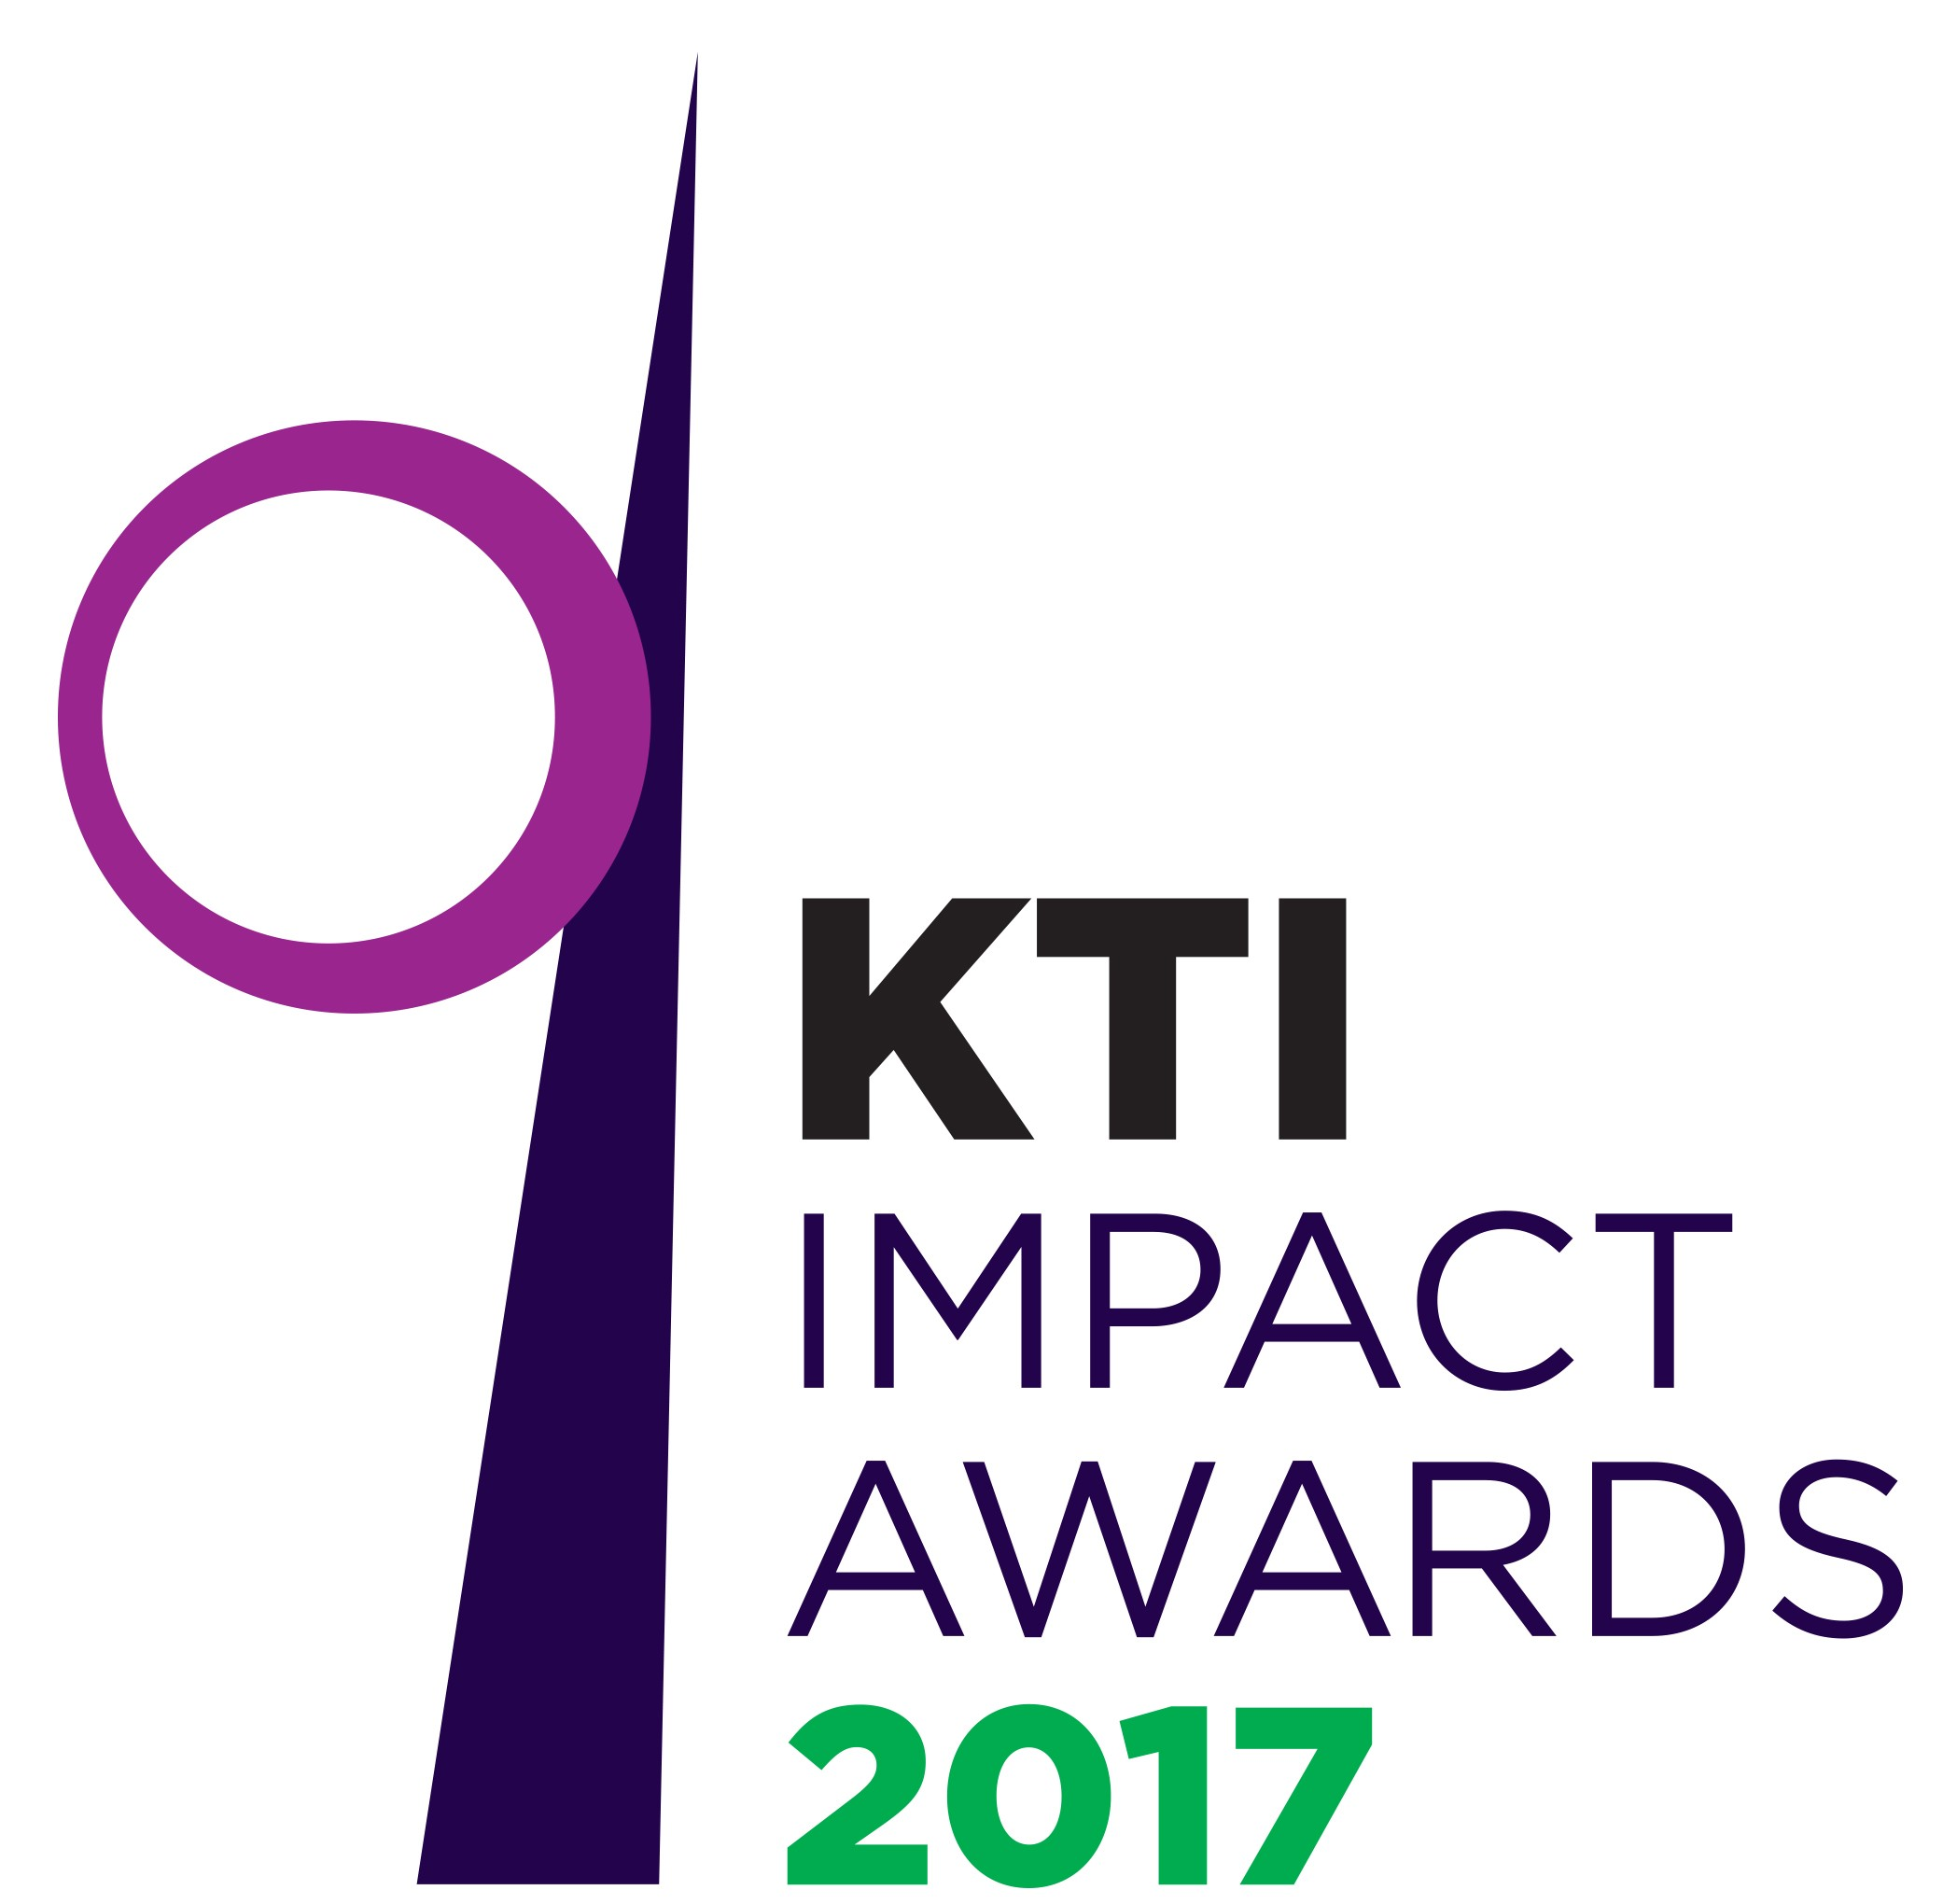 KTI Impact Awards 2017